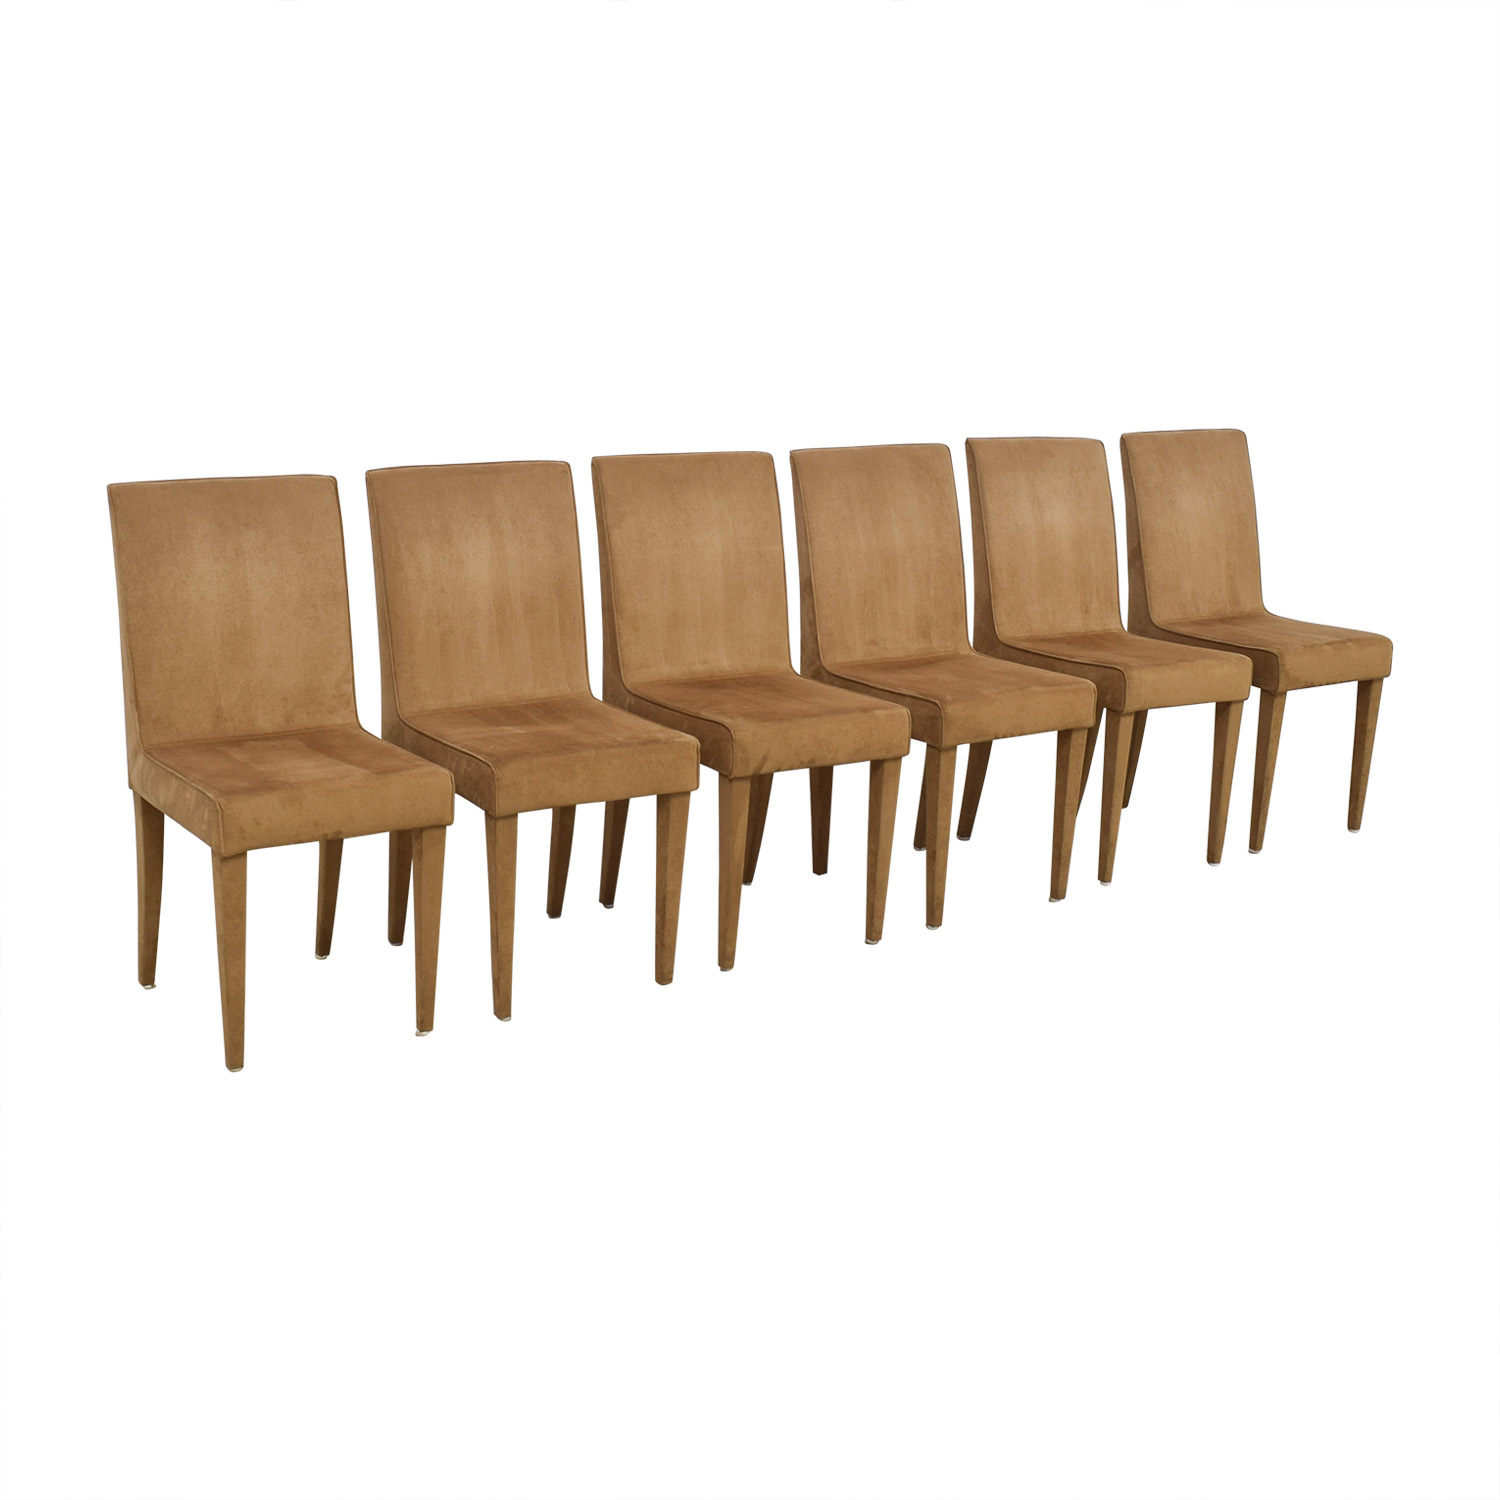 DDC DDC Classic Dining Chairs discount